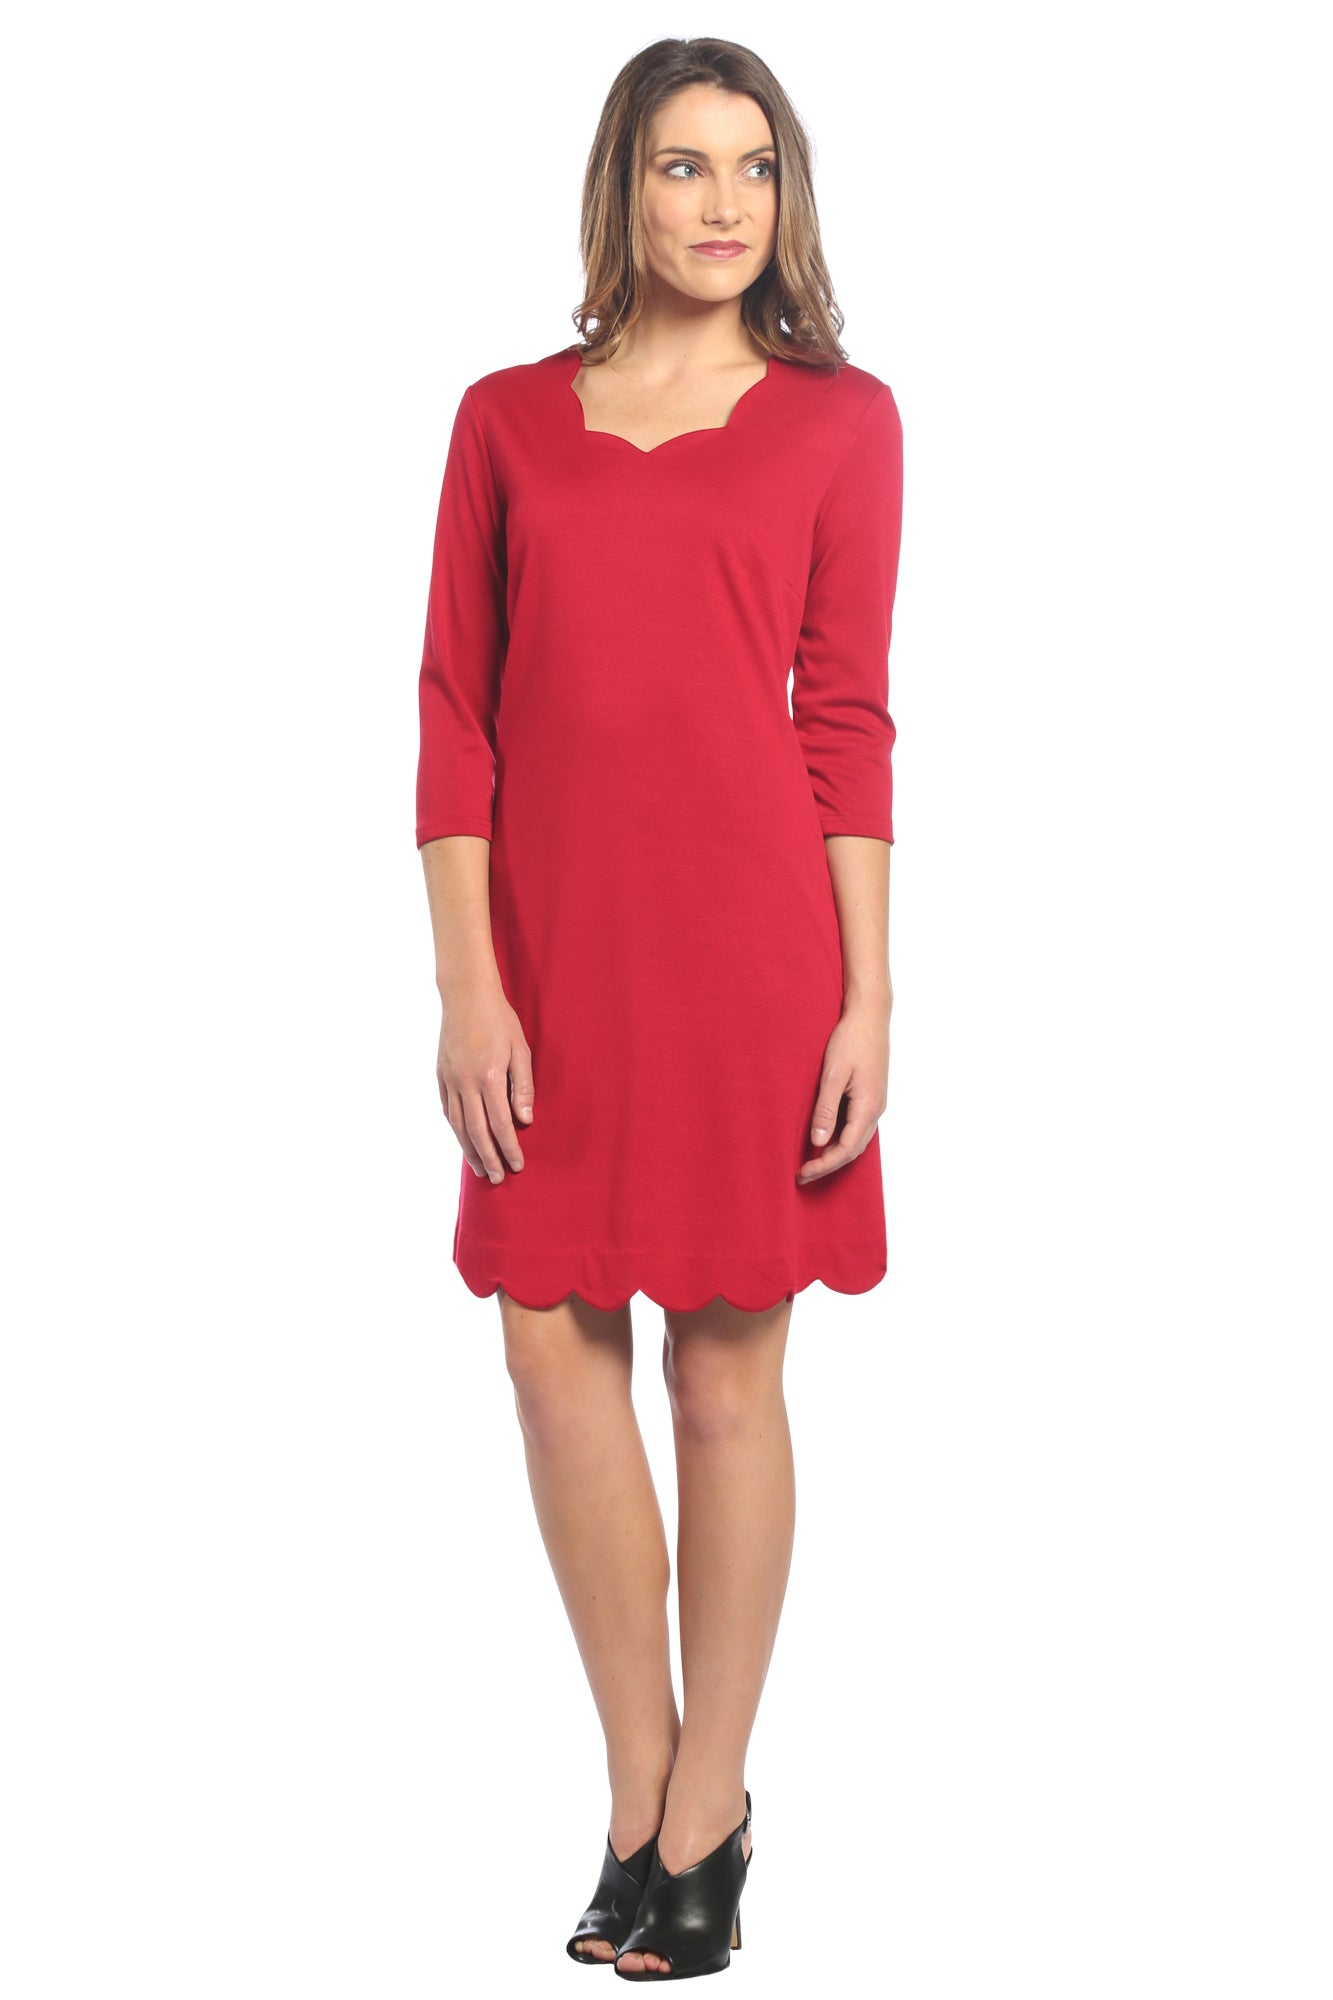 Scalloped Trim Shift Dress in Red